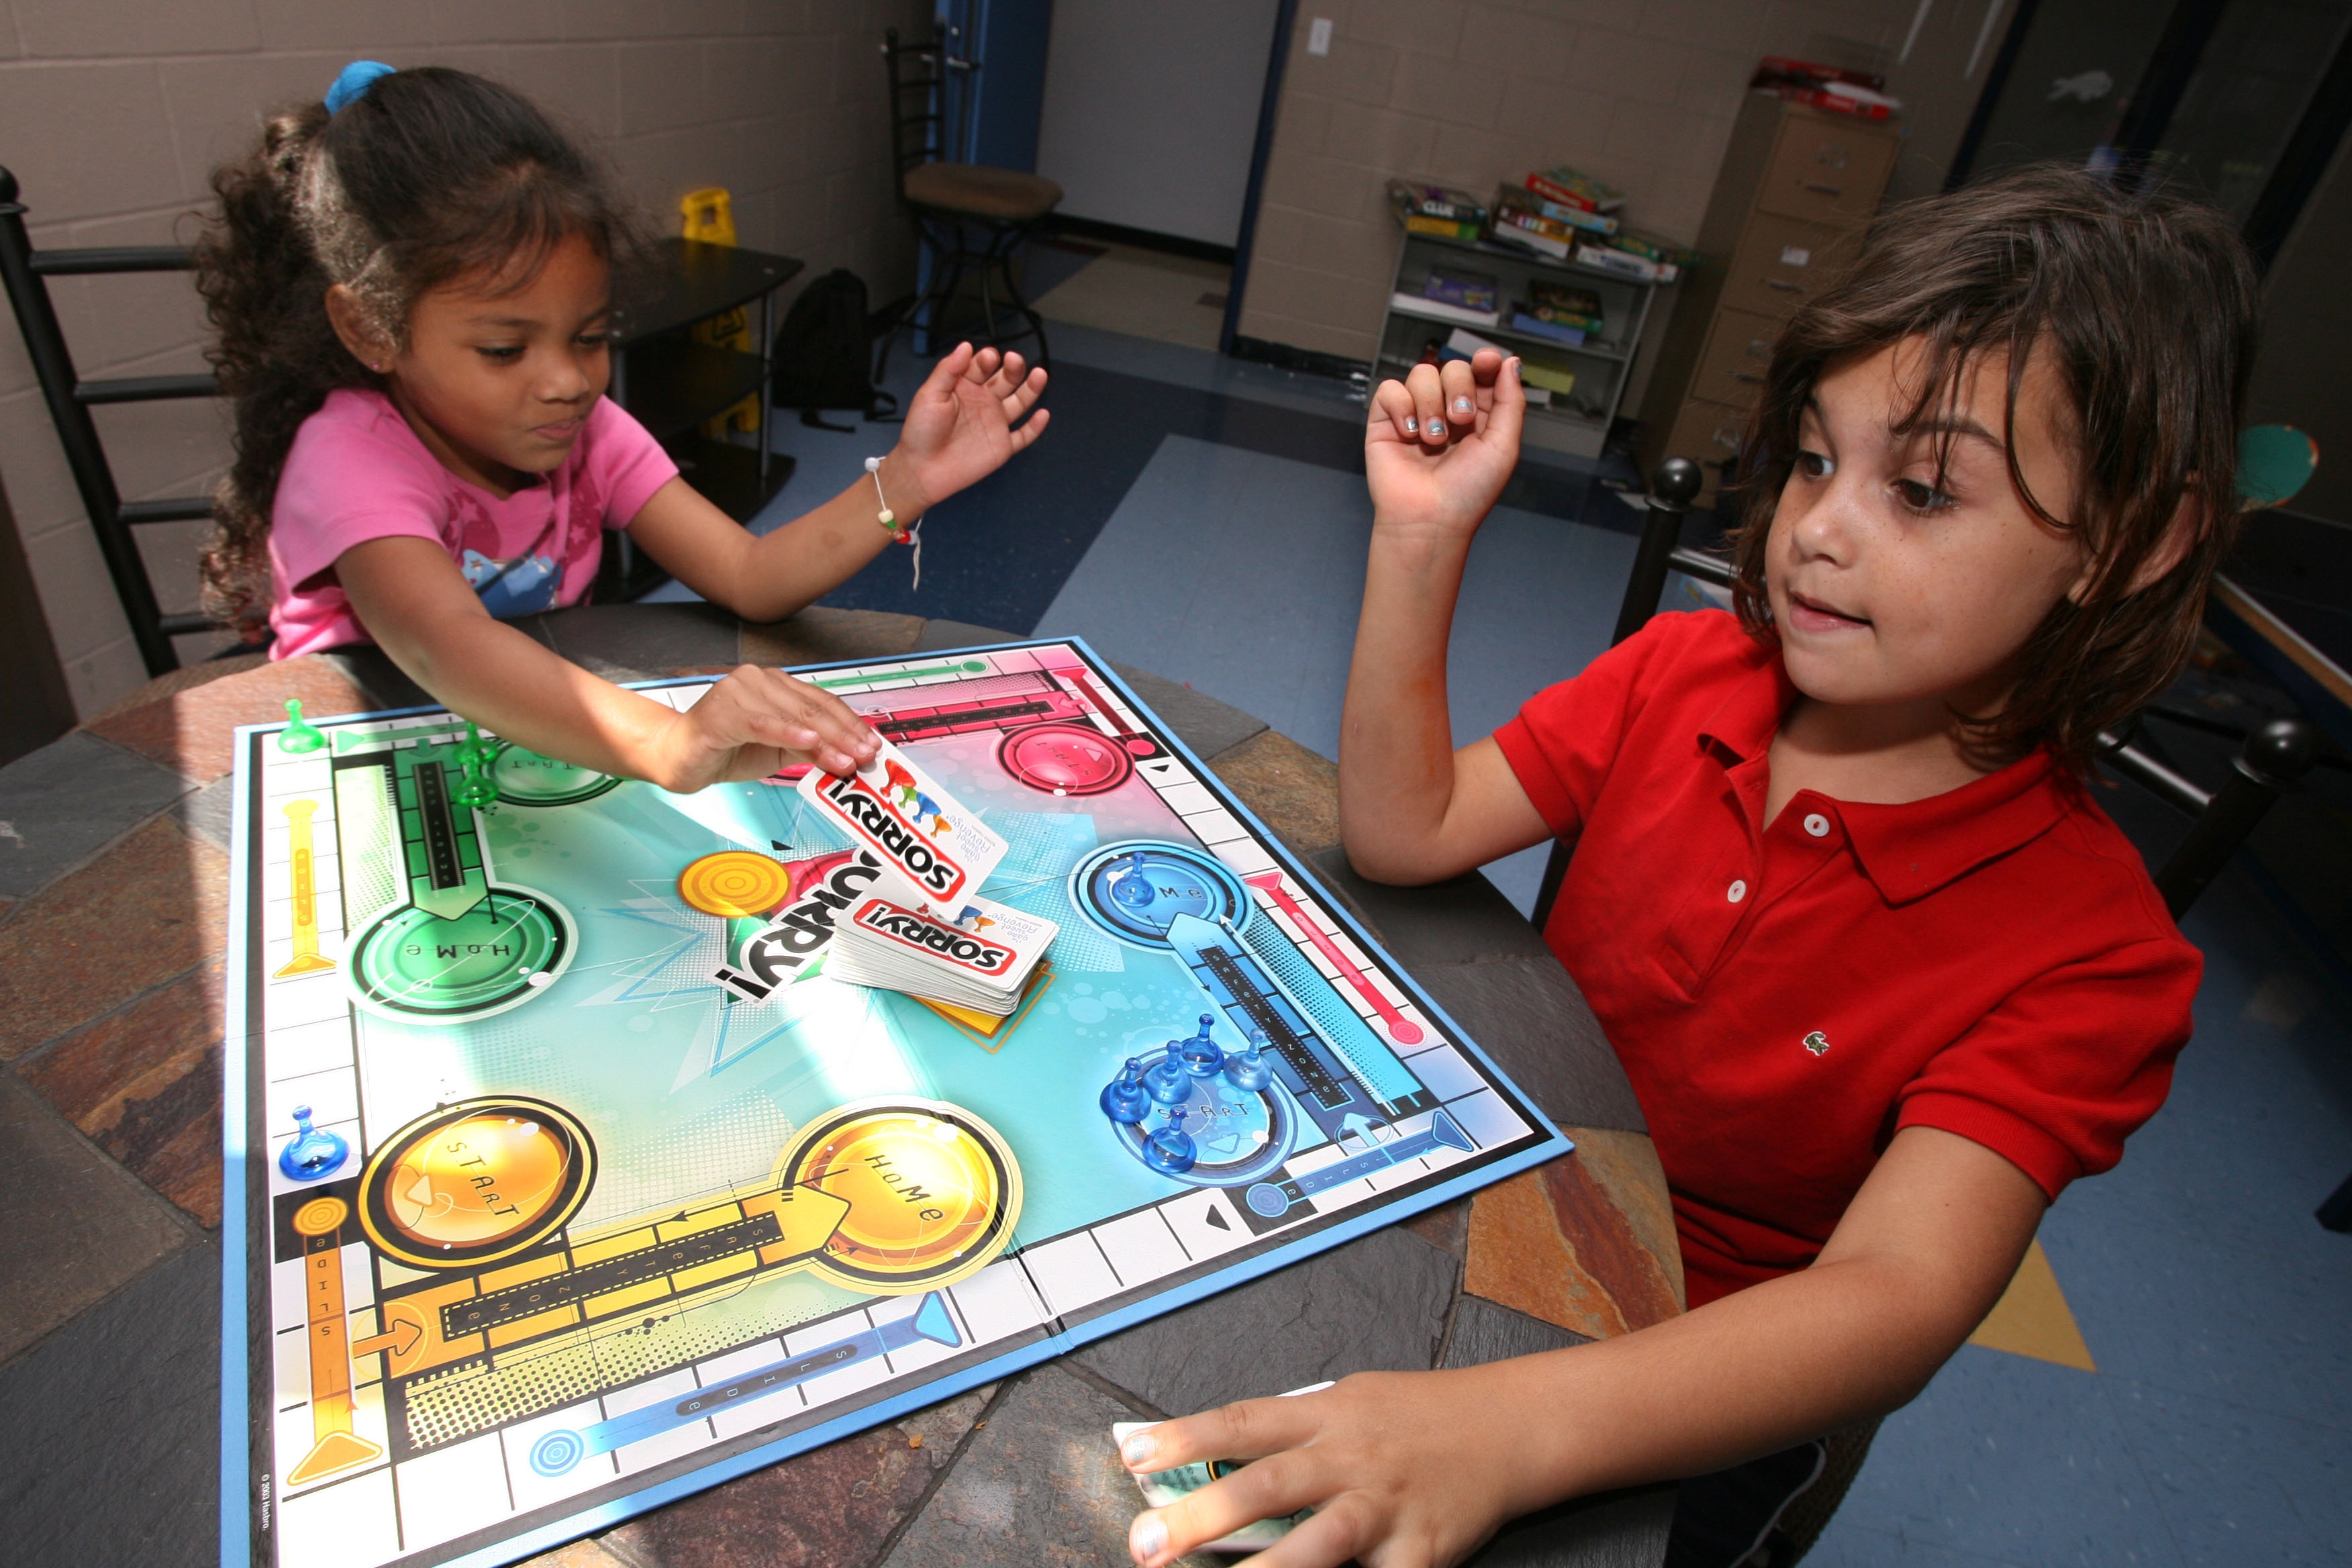 """FOR CITYSIDE:  Lissetly (cq) Garcia, 6, left, and Christina Maue, 7, play a game of """"Sorry!"""" at Camp Adventure, a joint day camp program at the Belle Center, in conjunction with the Dream Center, on Maryland St. in Buffalo, Tuesday July 15th, 2008.  PHOTO BY CHARLES LEWIS"""